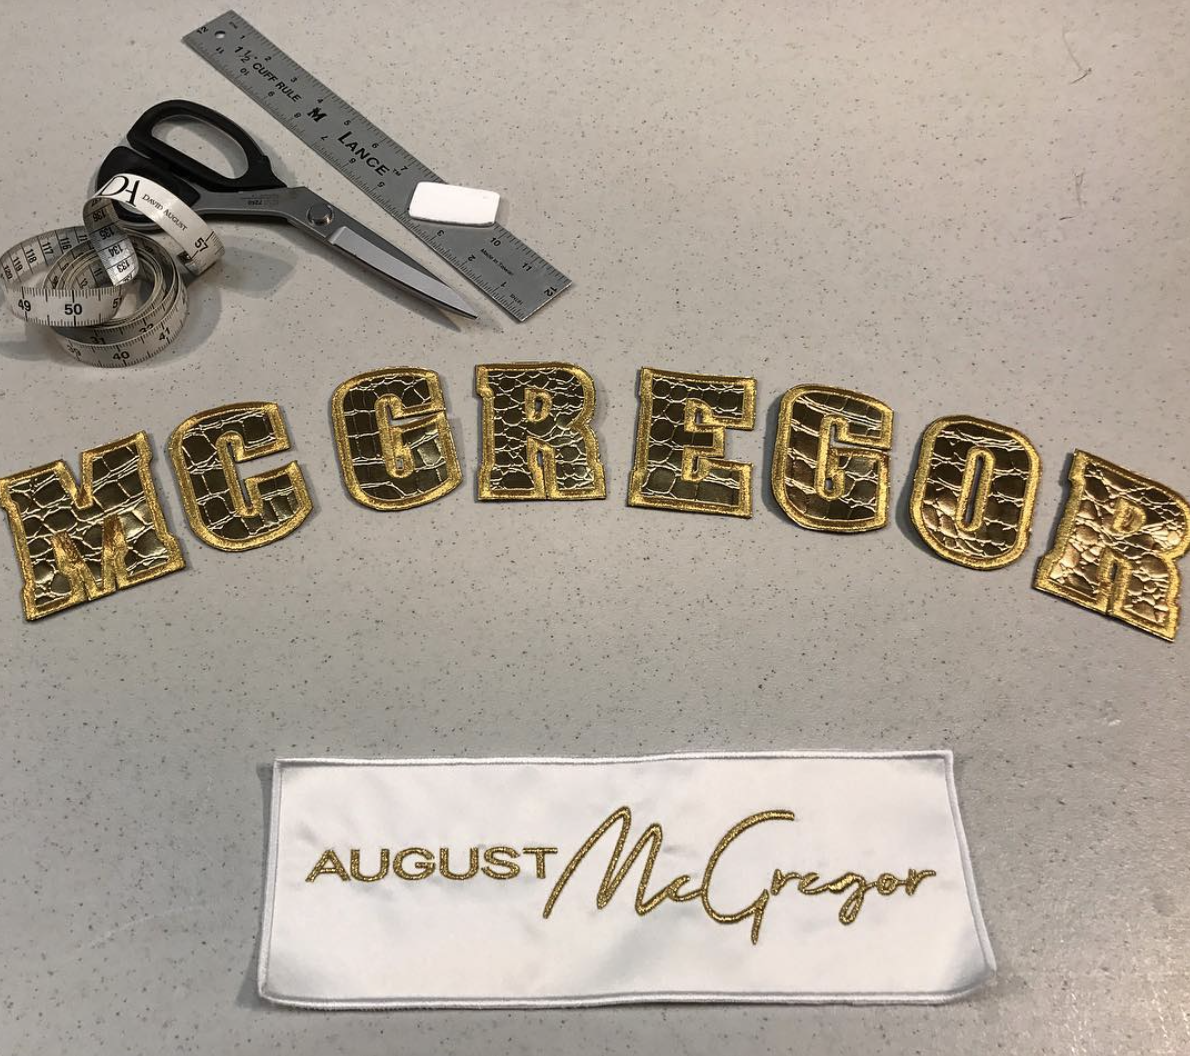 August McGregor Instagram